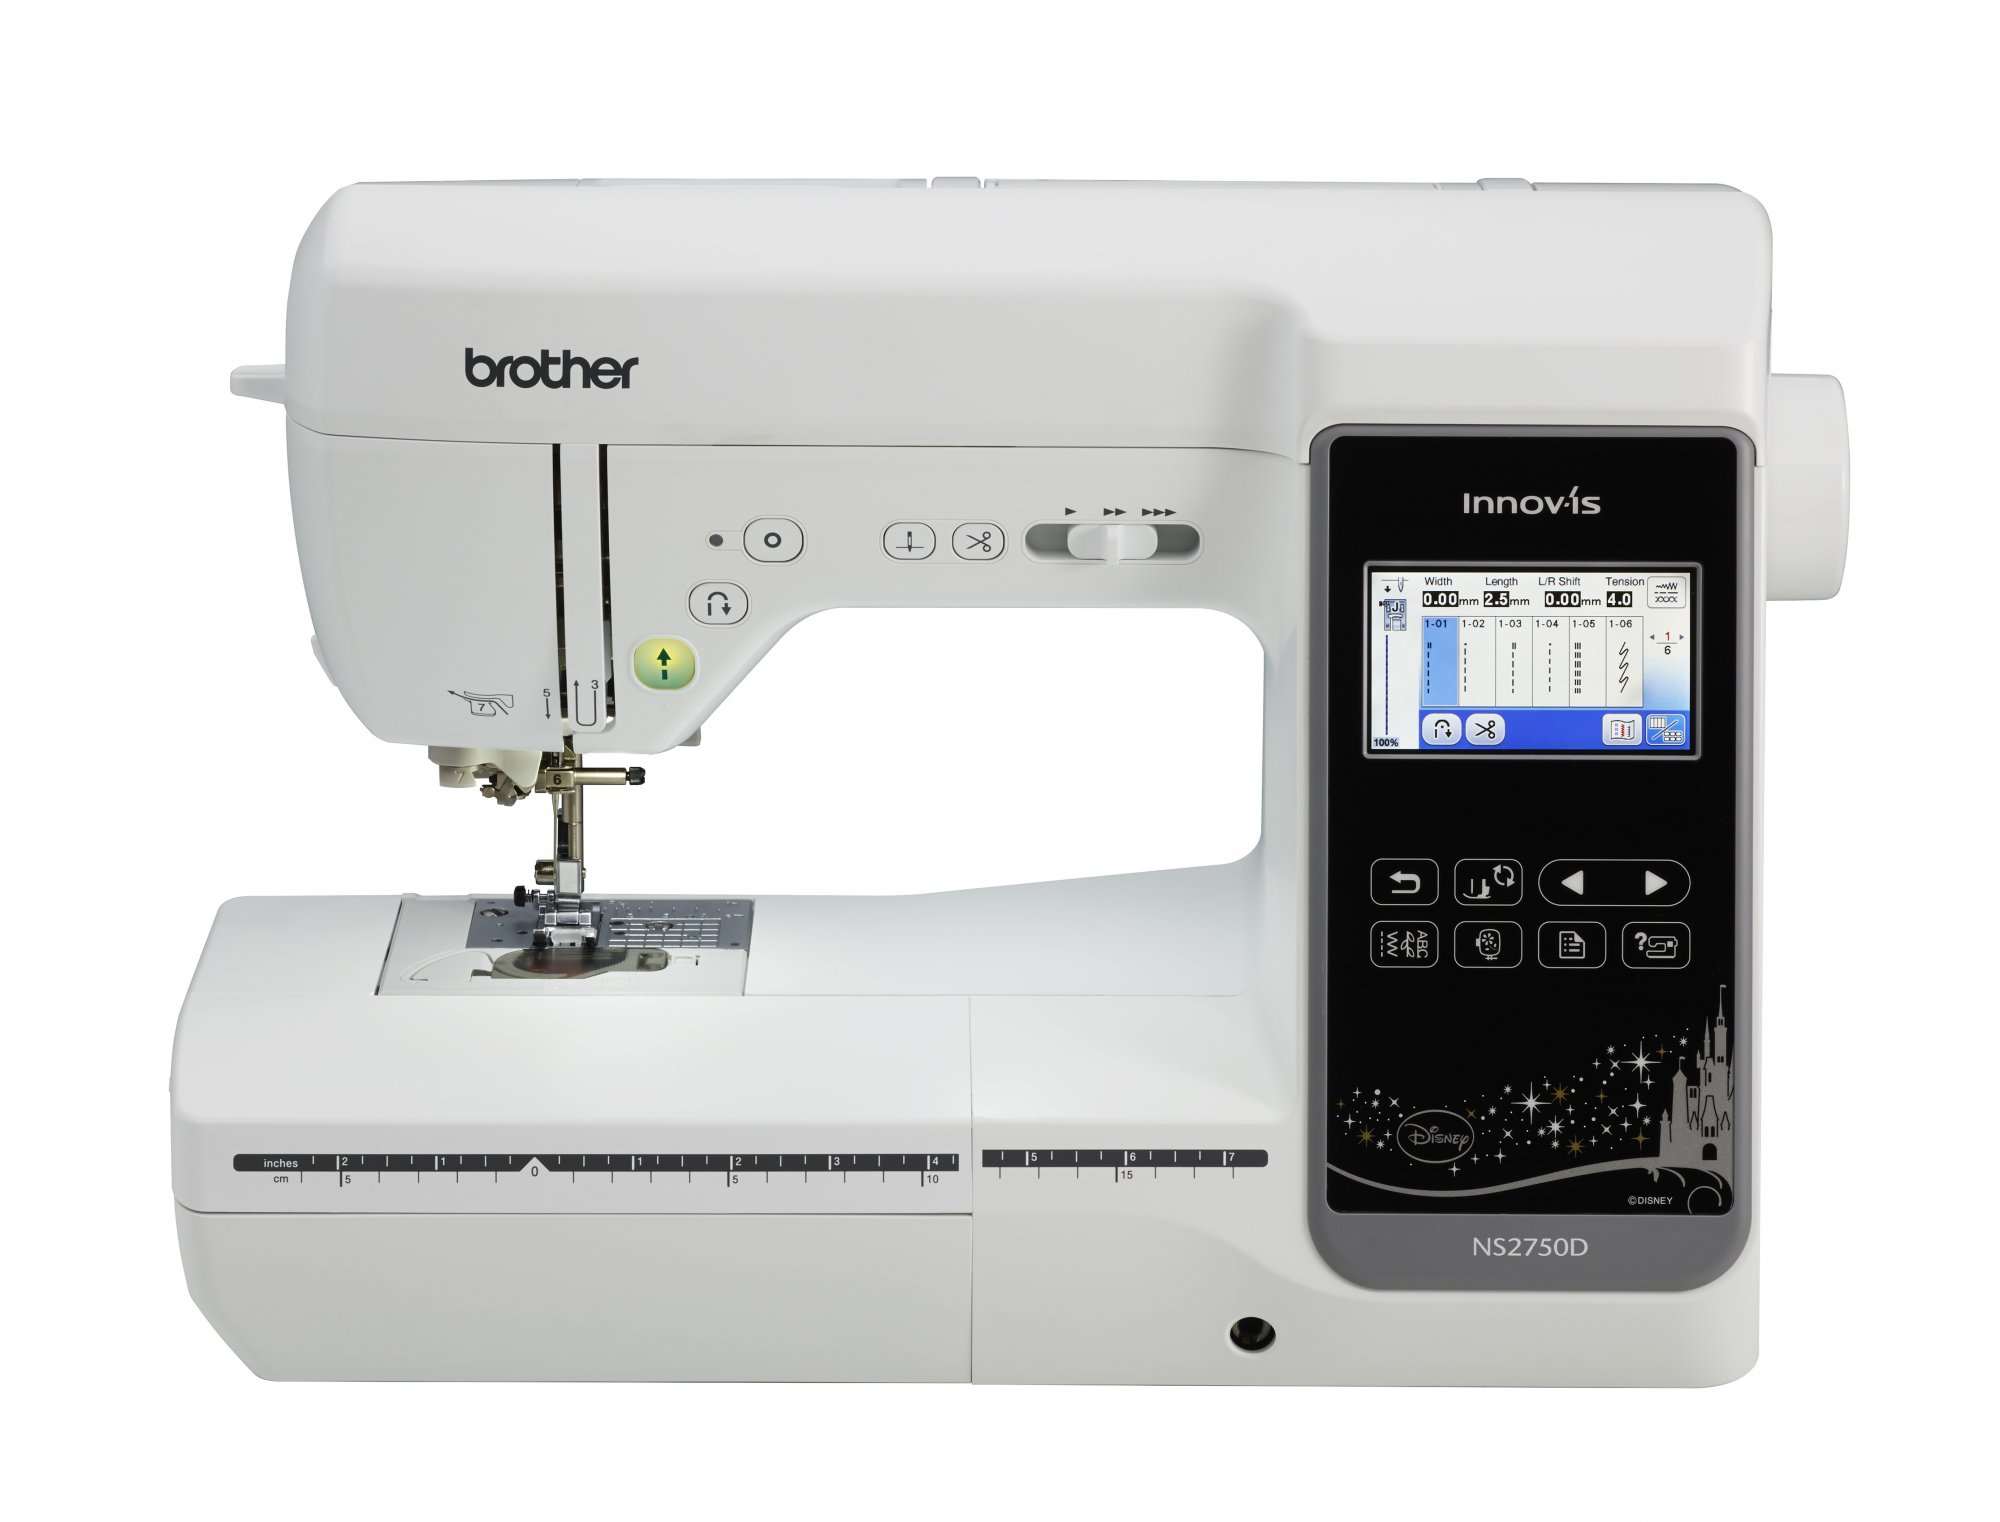 Brother Innovis NS2750D